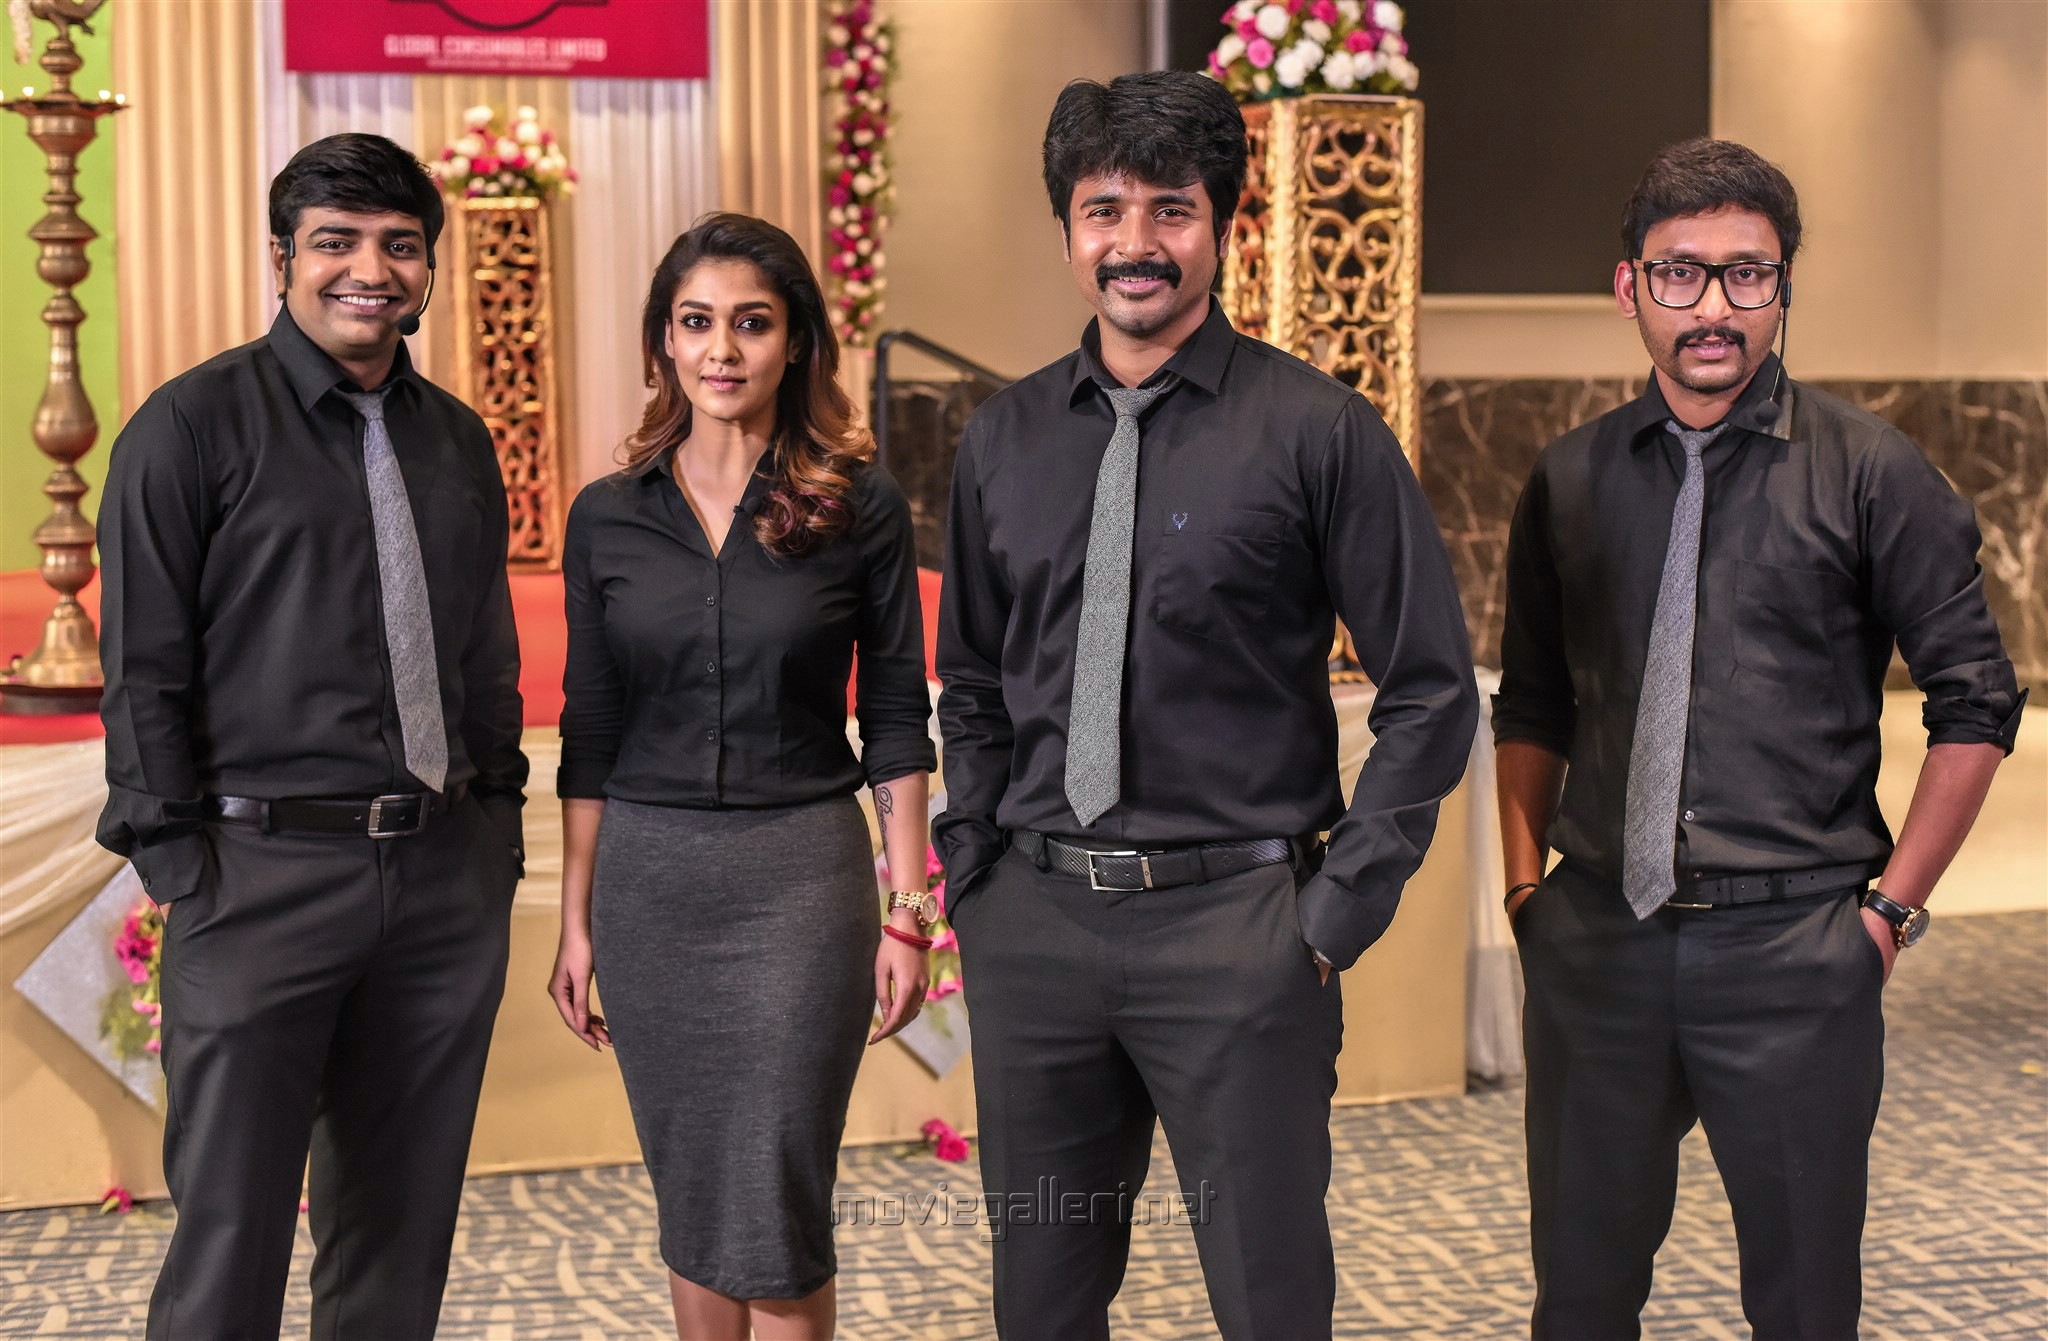 Sathish, Nayanthara, Sivakarthikeyan, RJ Balaji in Velaikkaran Movie Stills